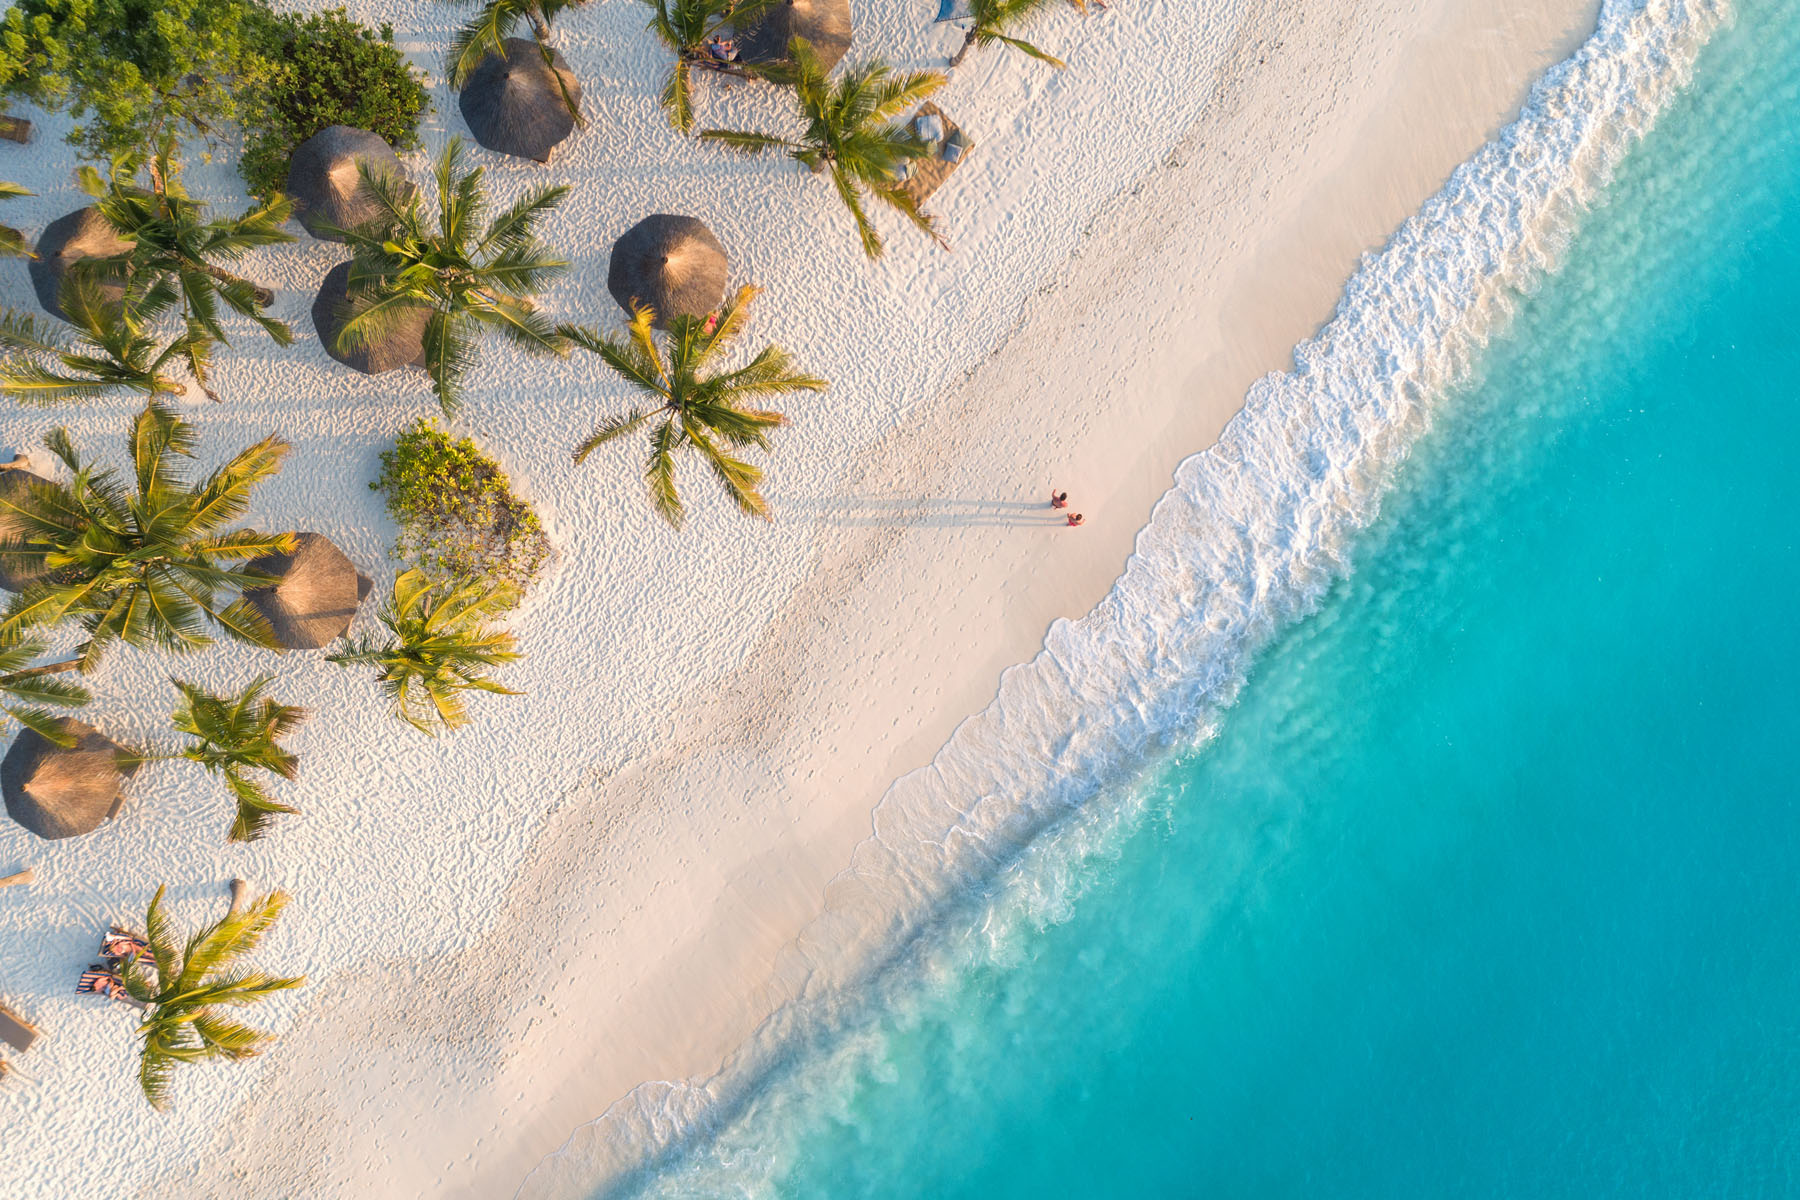 Top-down picture of palm trees and beach